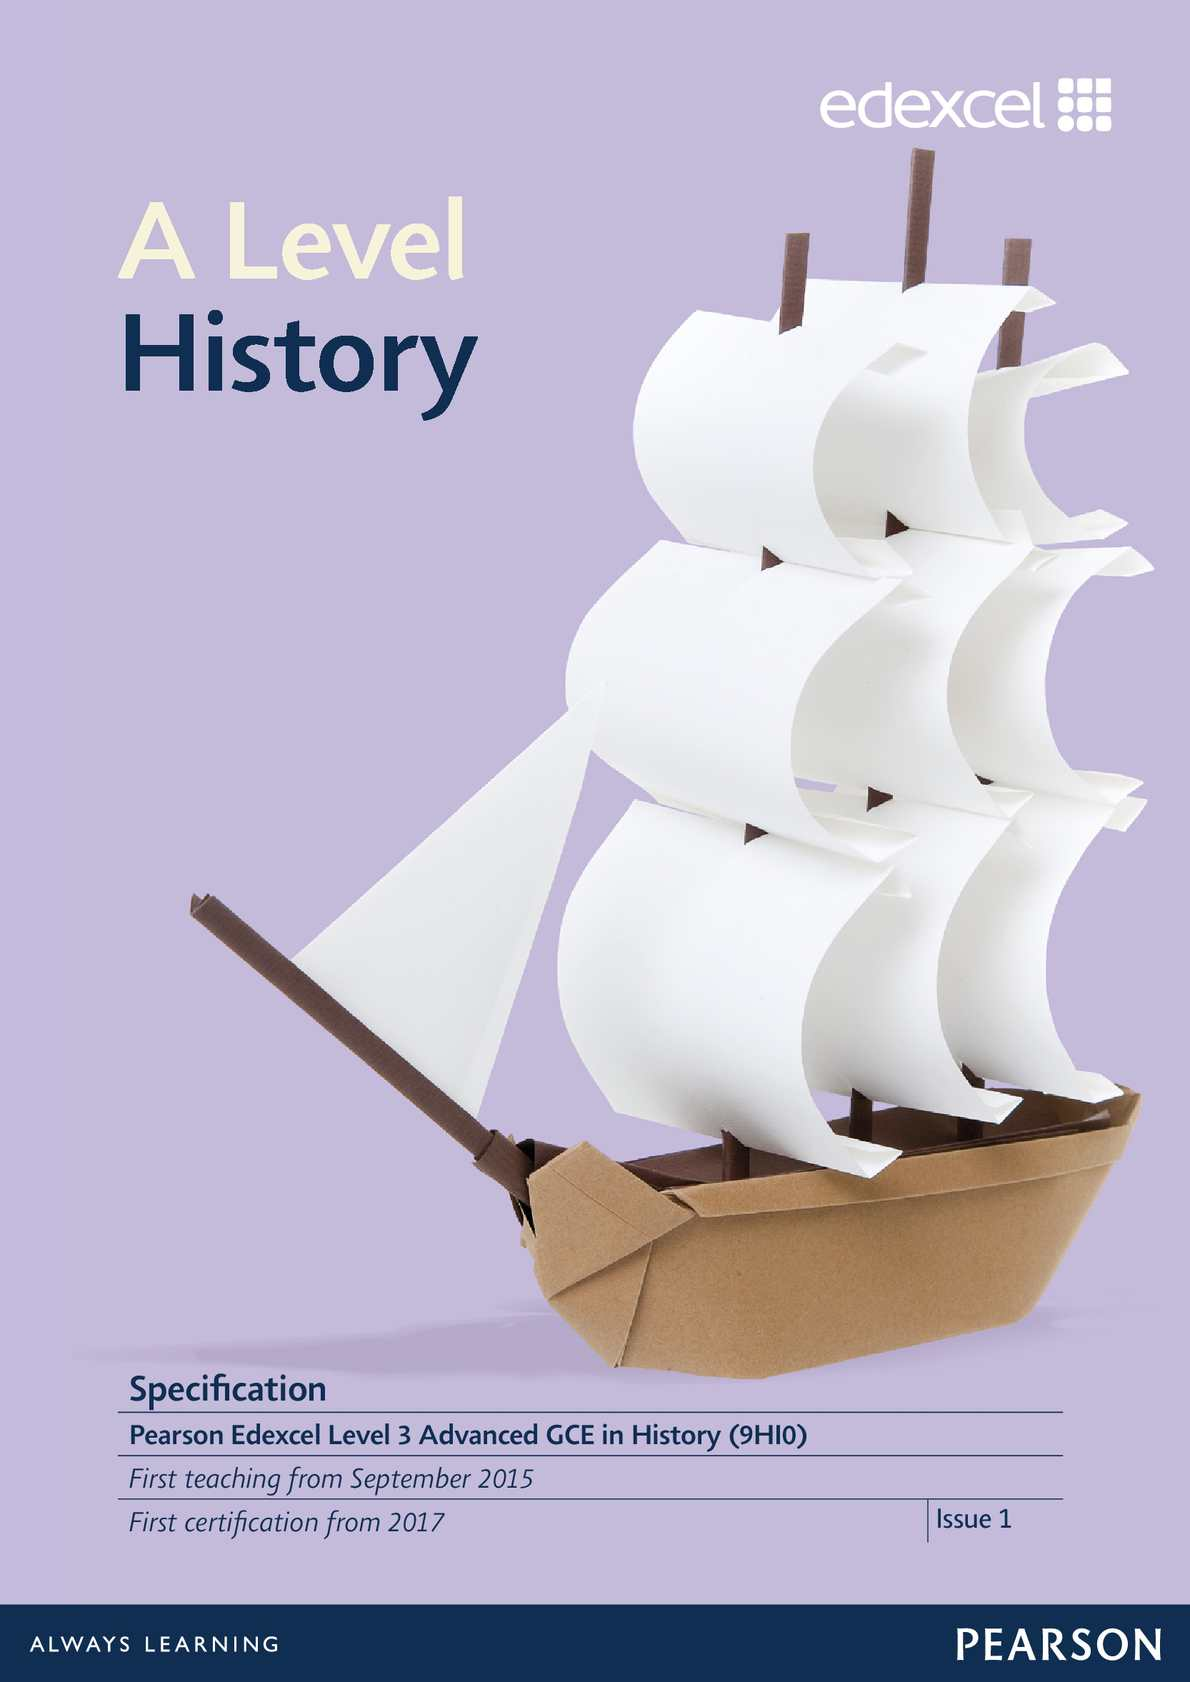 edexcel history coursework mark scheme